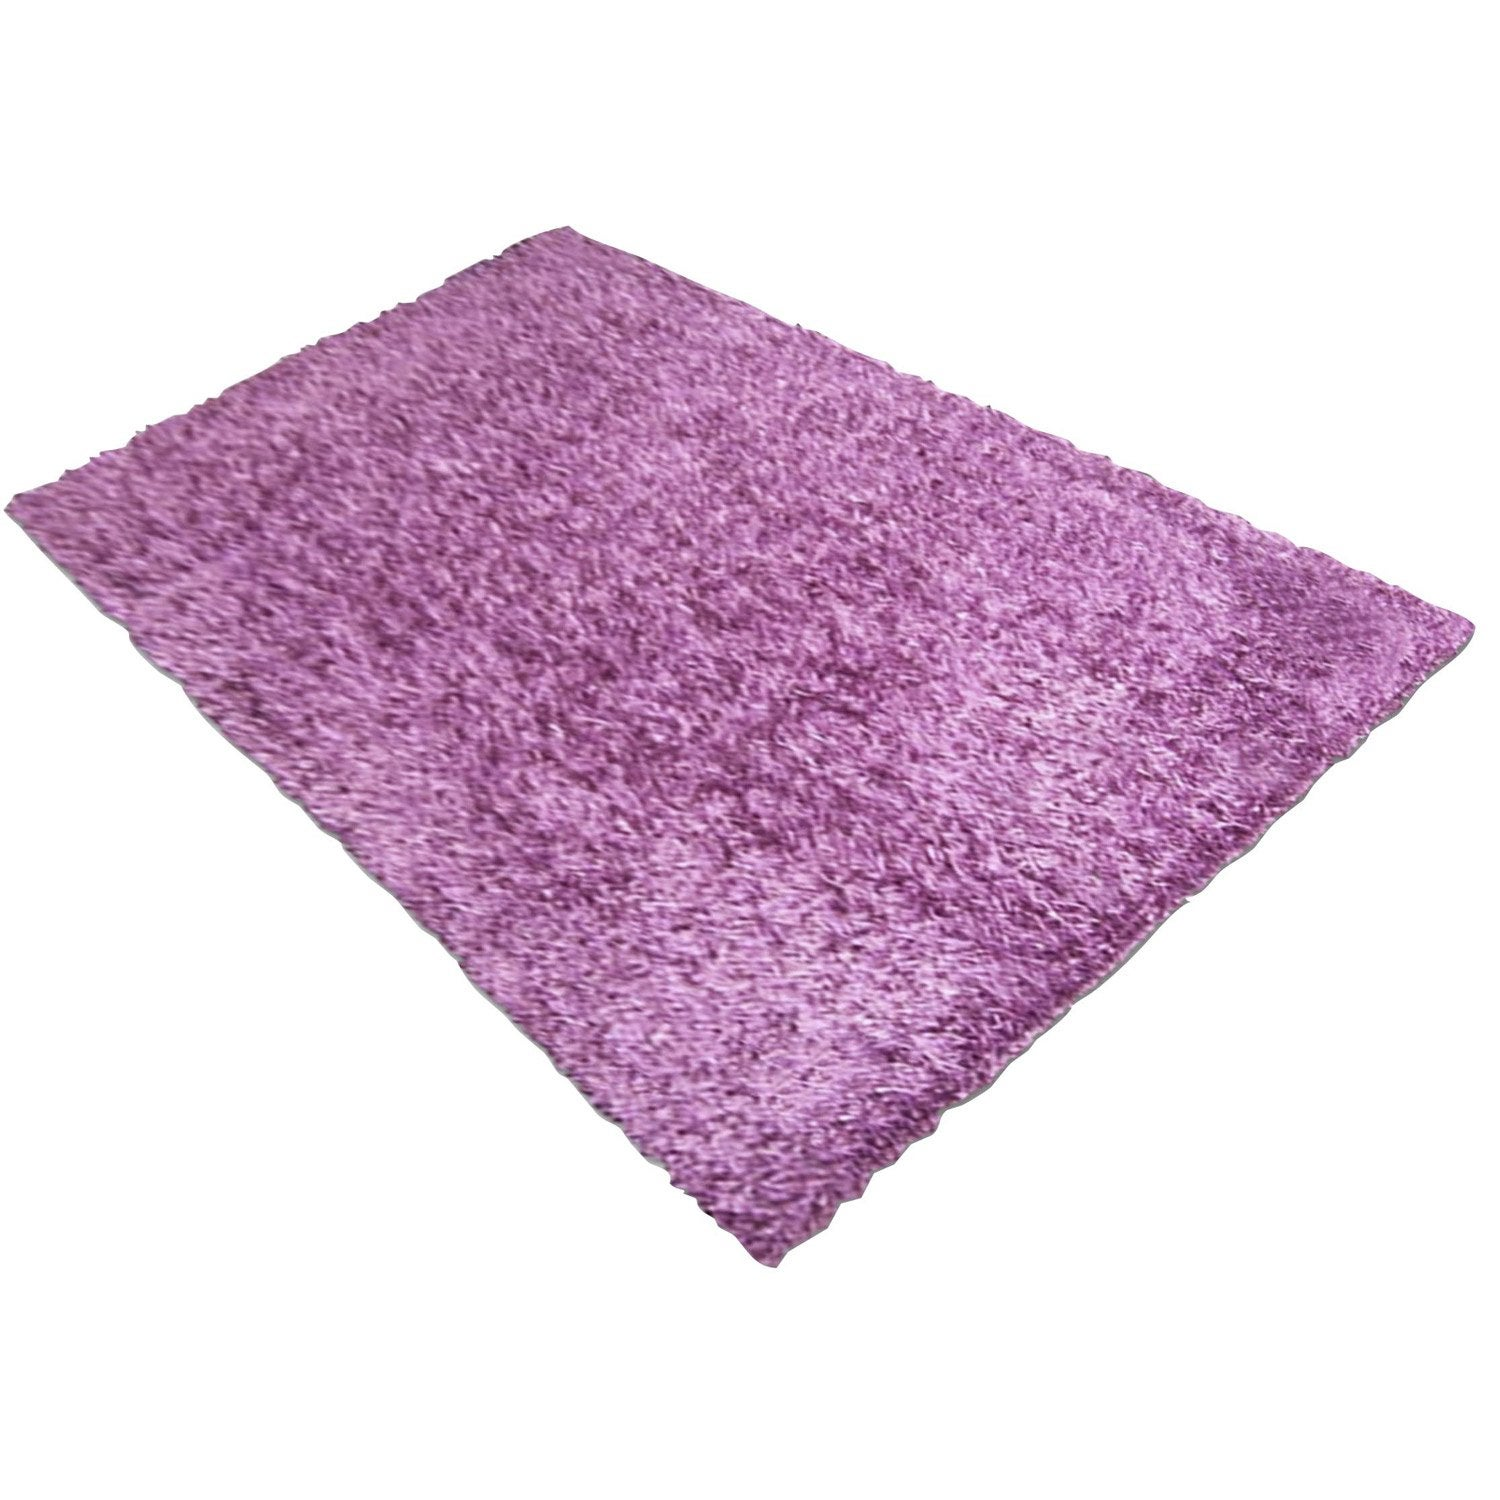 Tapis violet shaggy lilou x cm leroy merlin Tapis rose clair